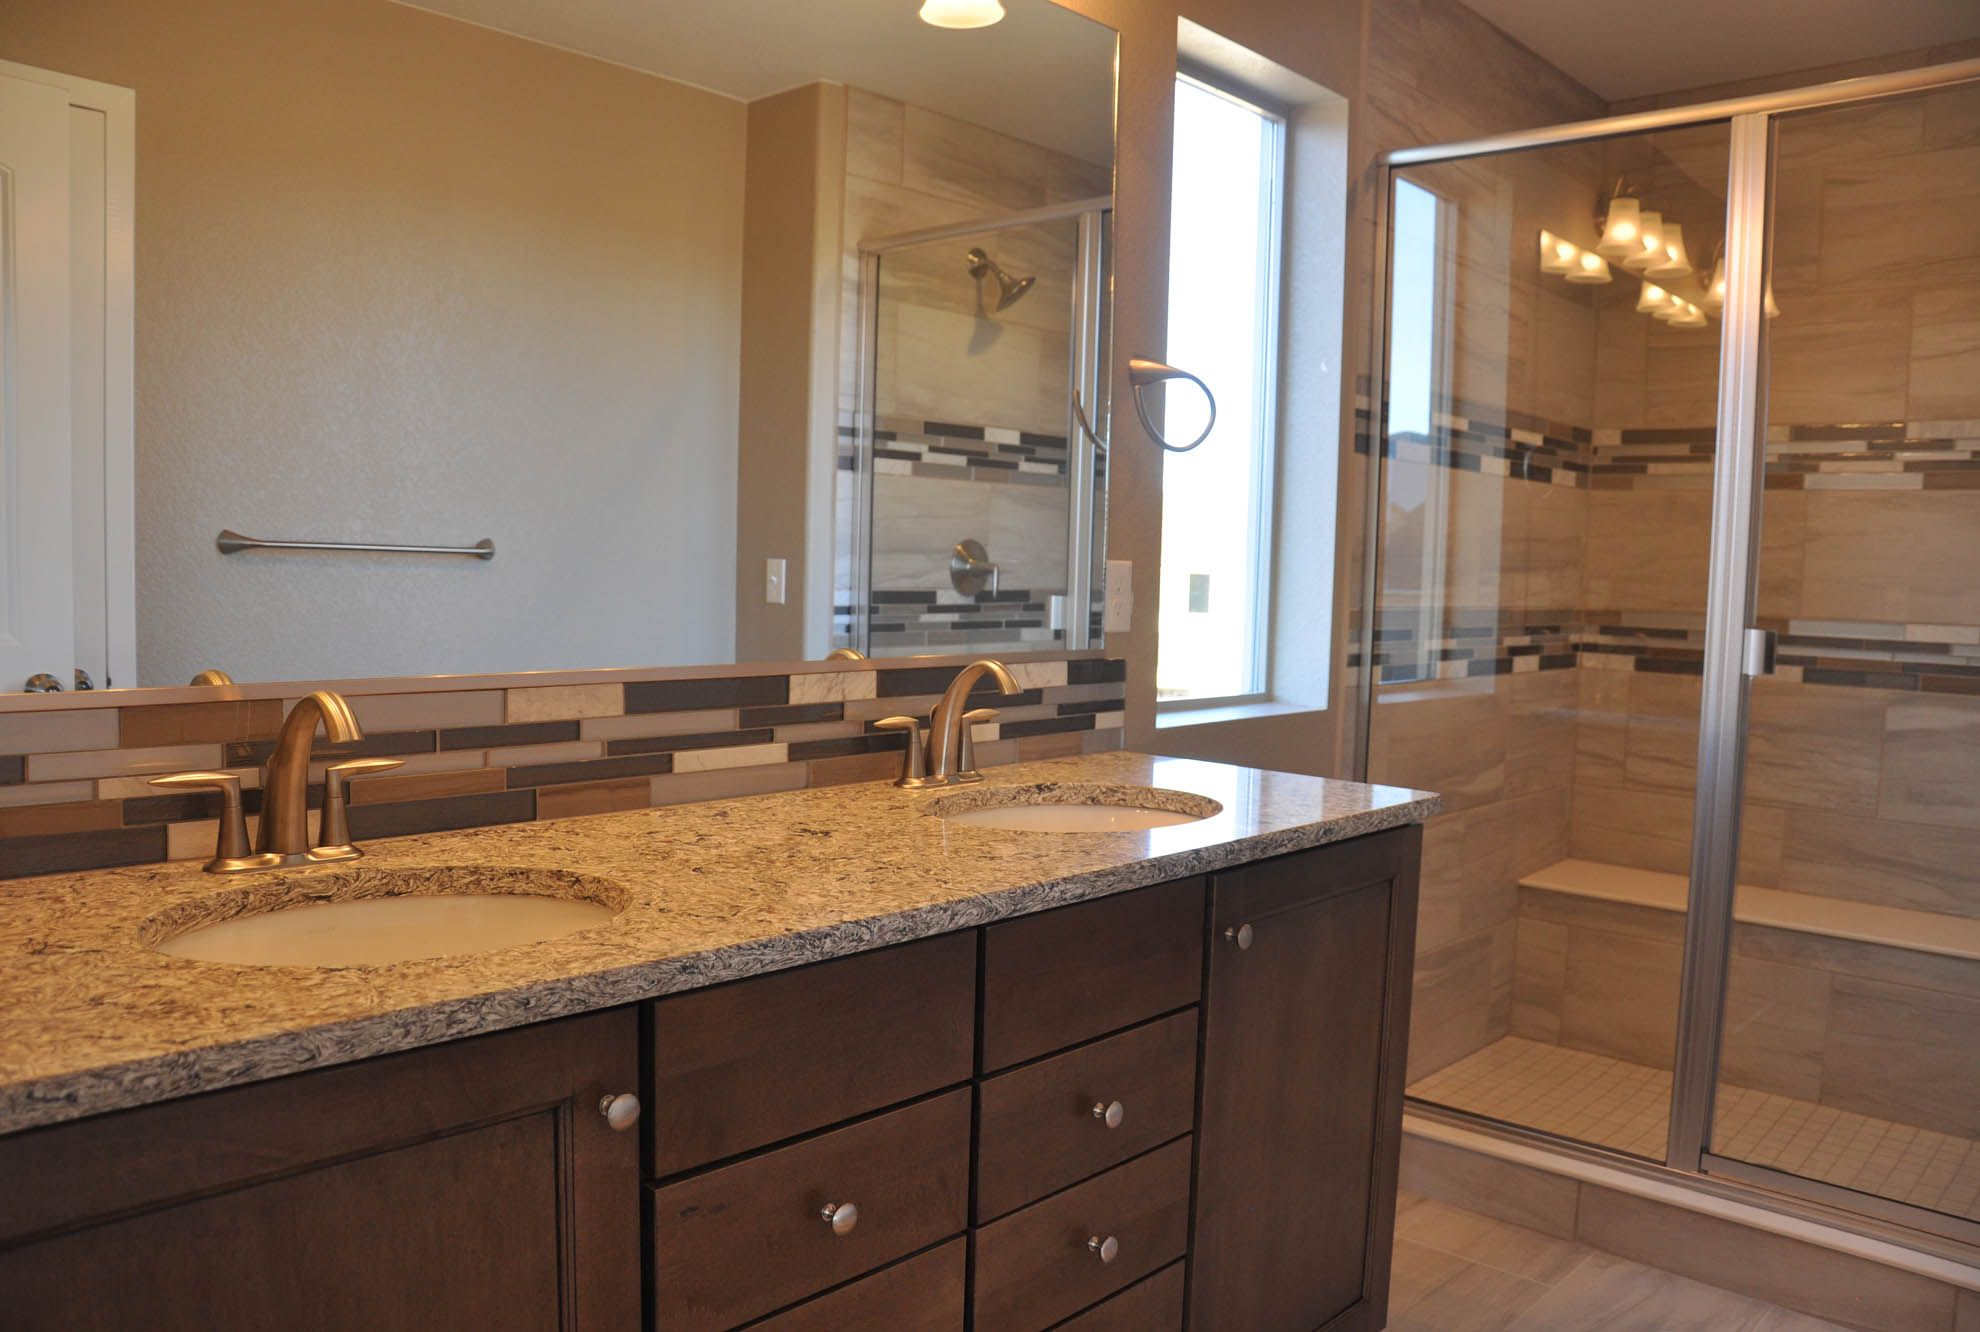 Bathroom featured in the Meadow By Classic Homes in Colorado Springs, CO